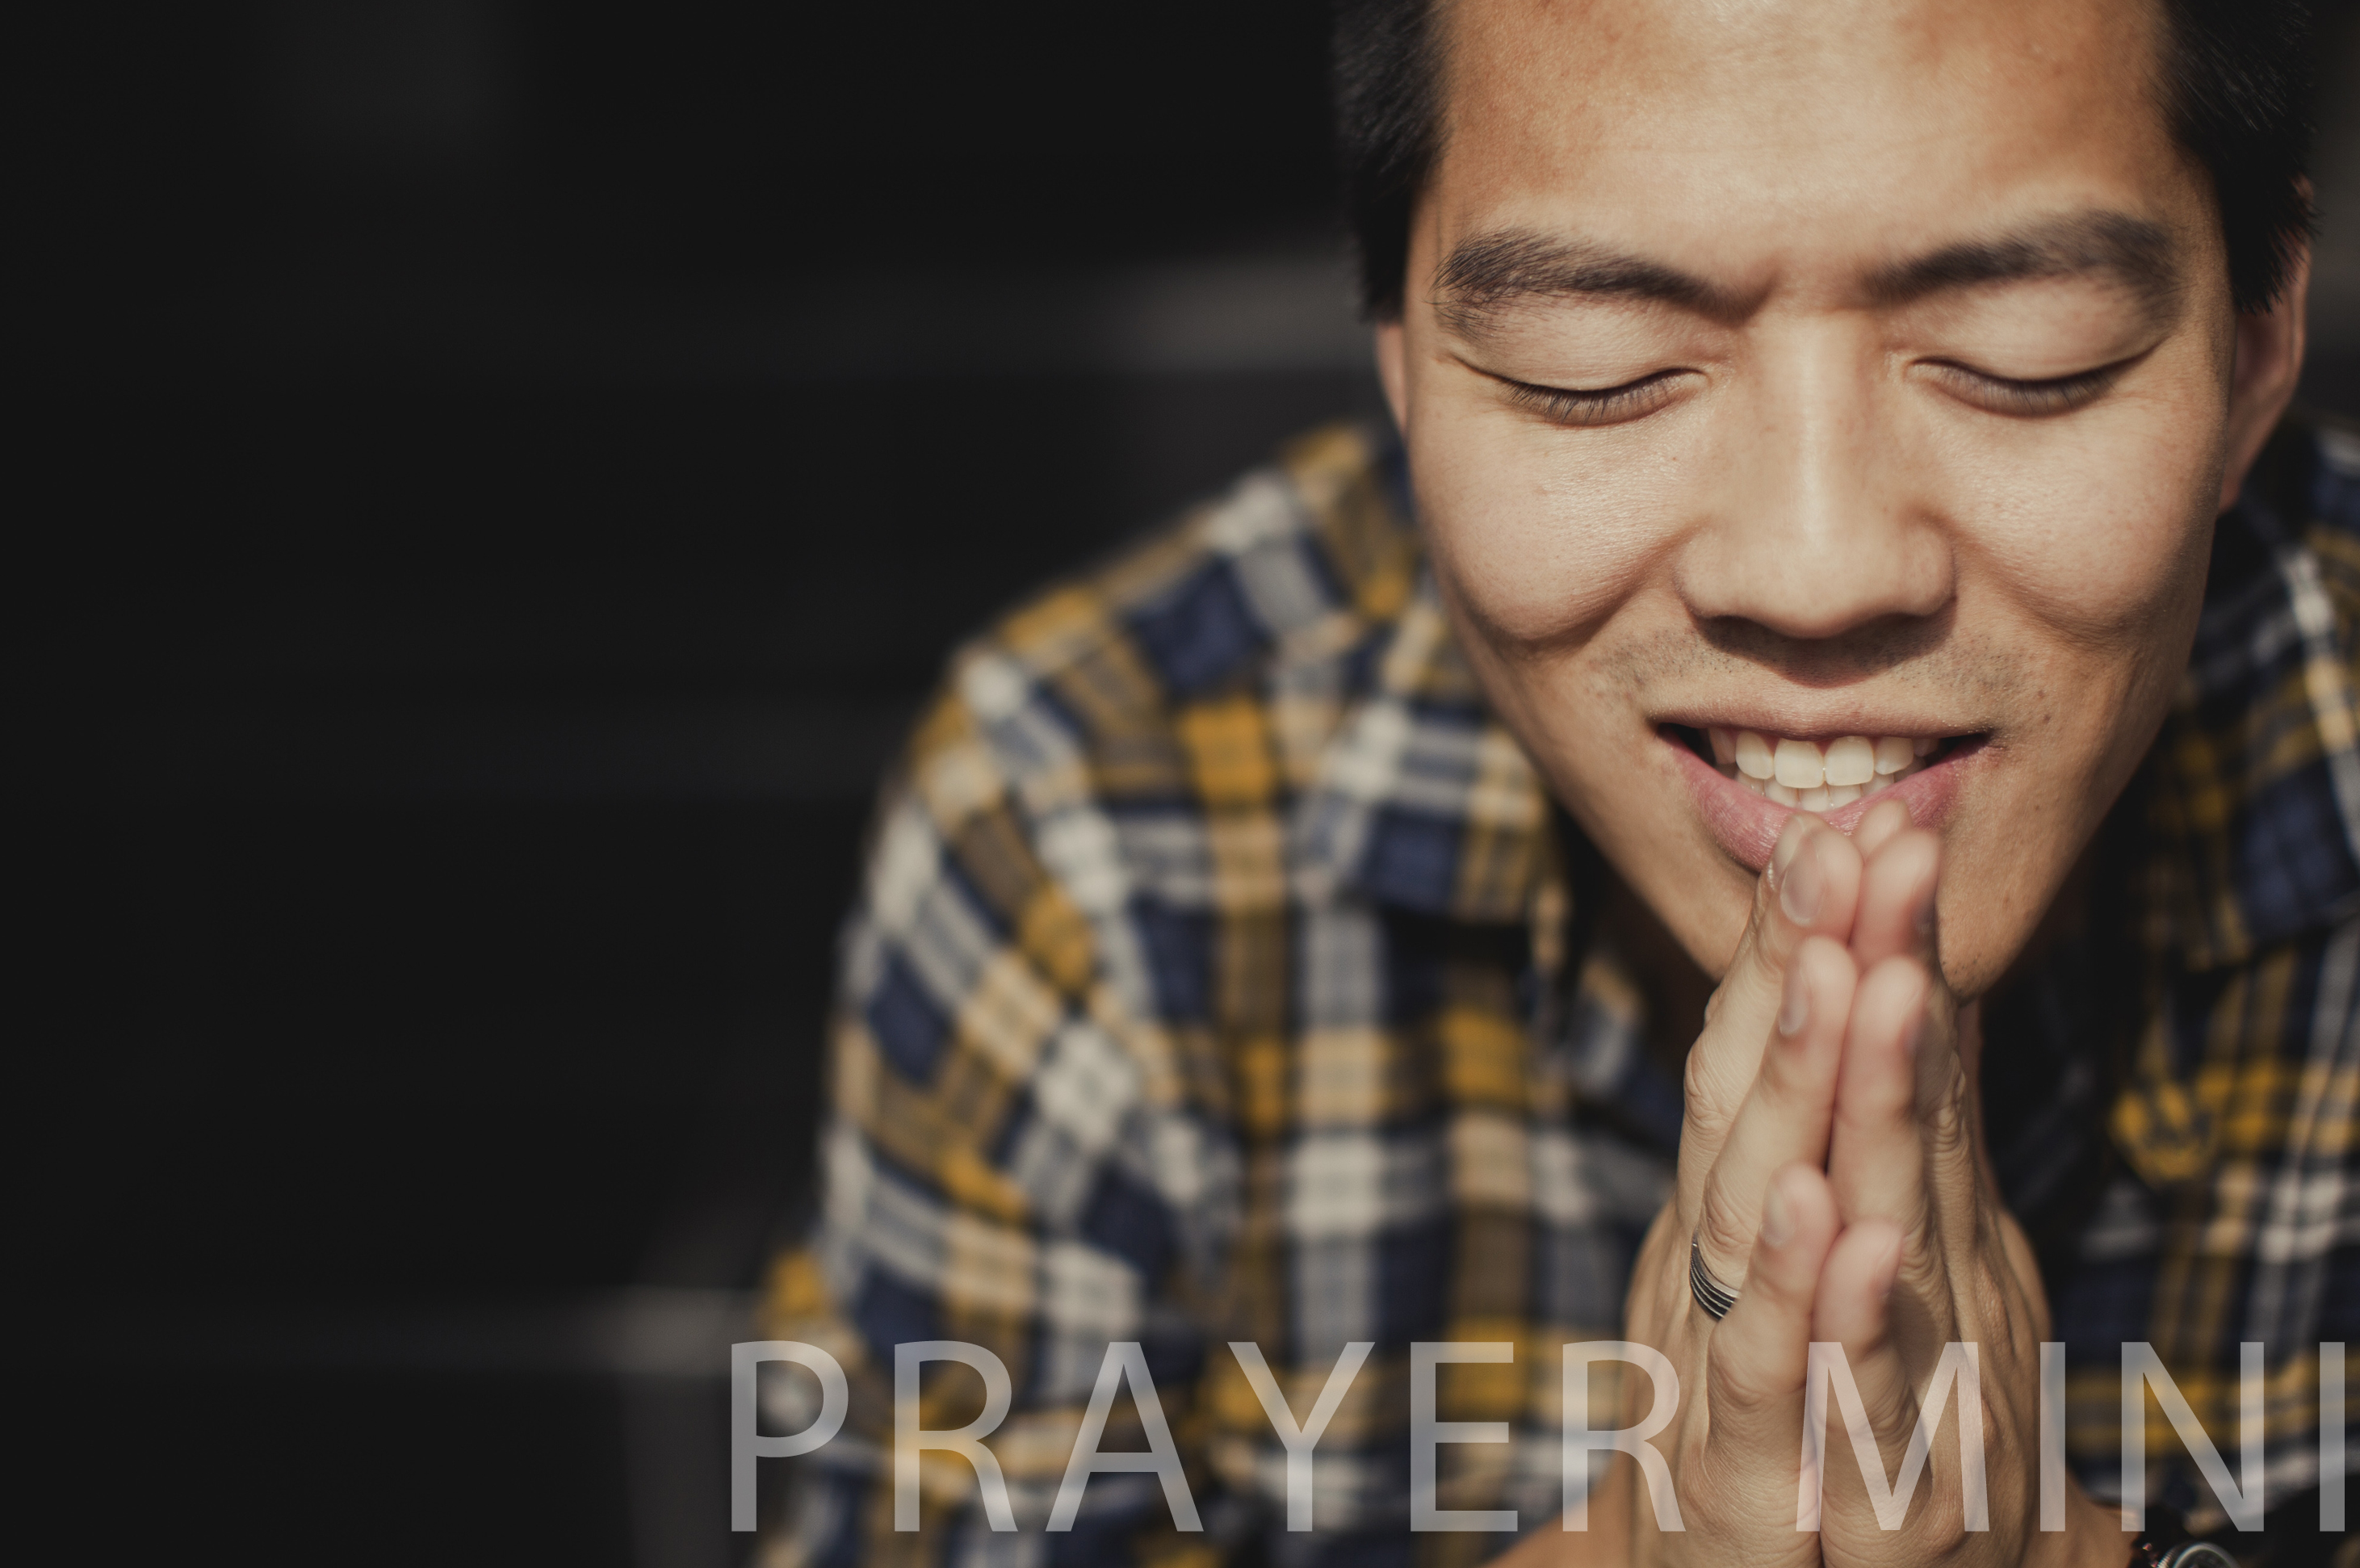 I NEED PRAYER HEADER